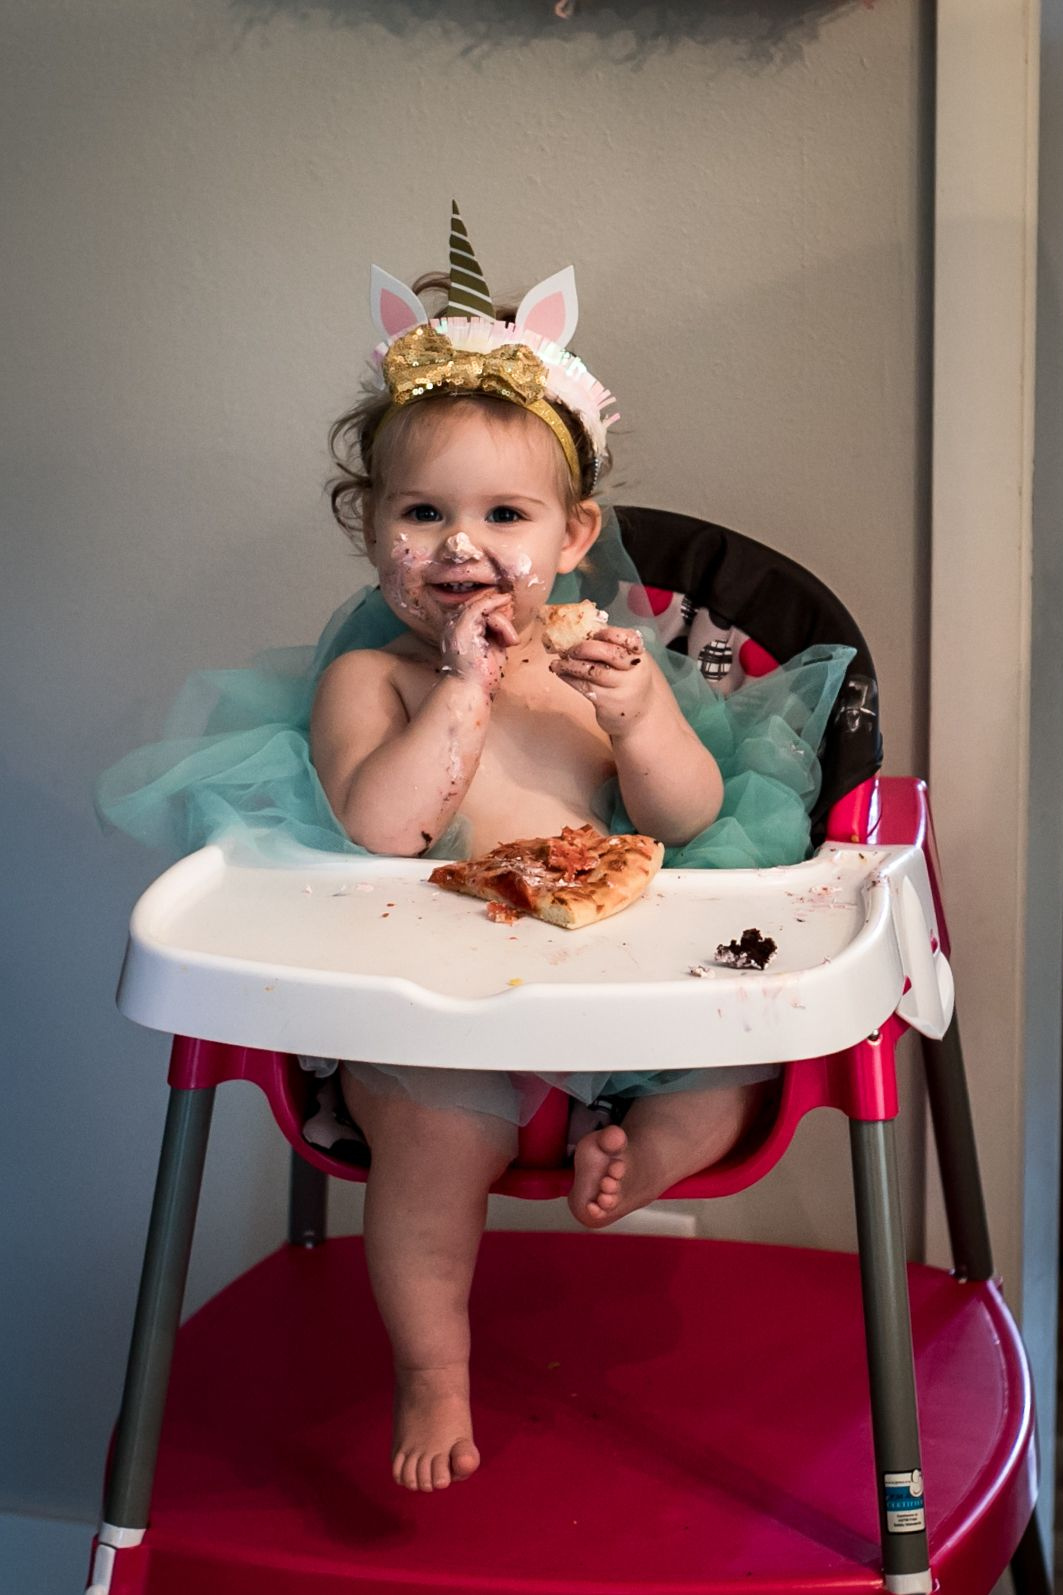 Little girl enjoying pizza on her first birthday in Sioux City, IA.